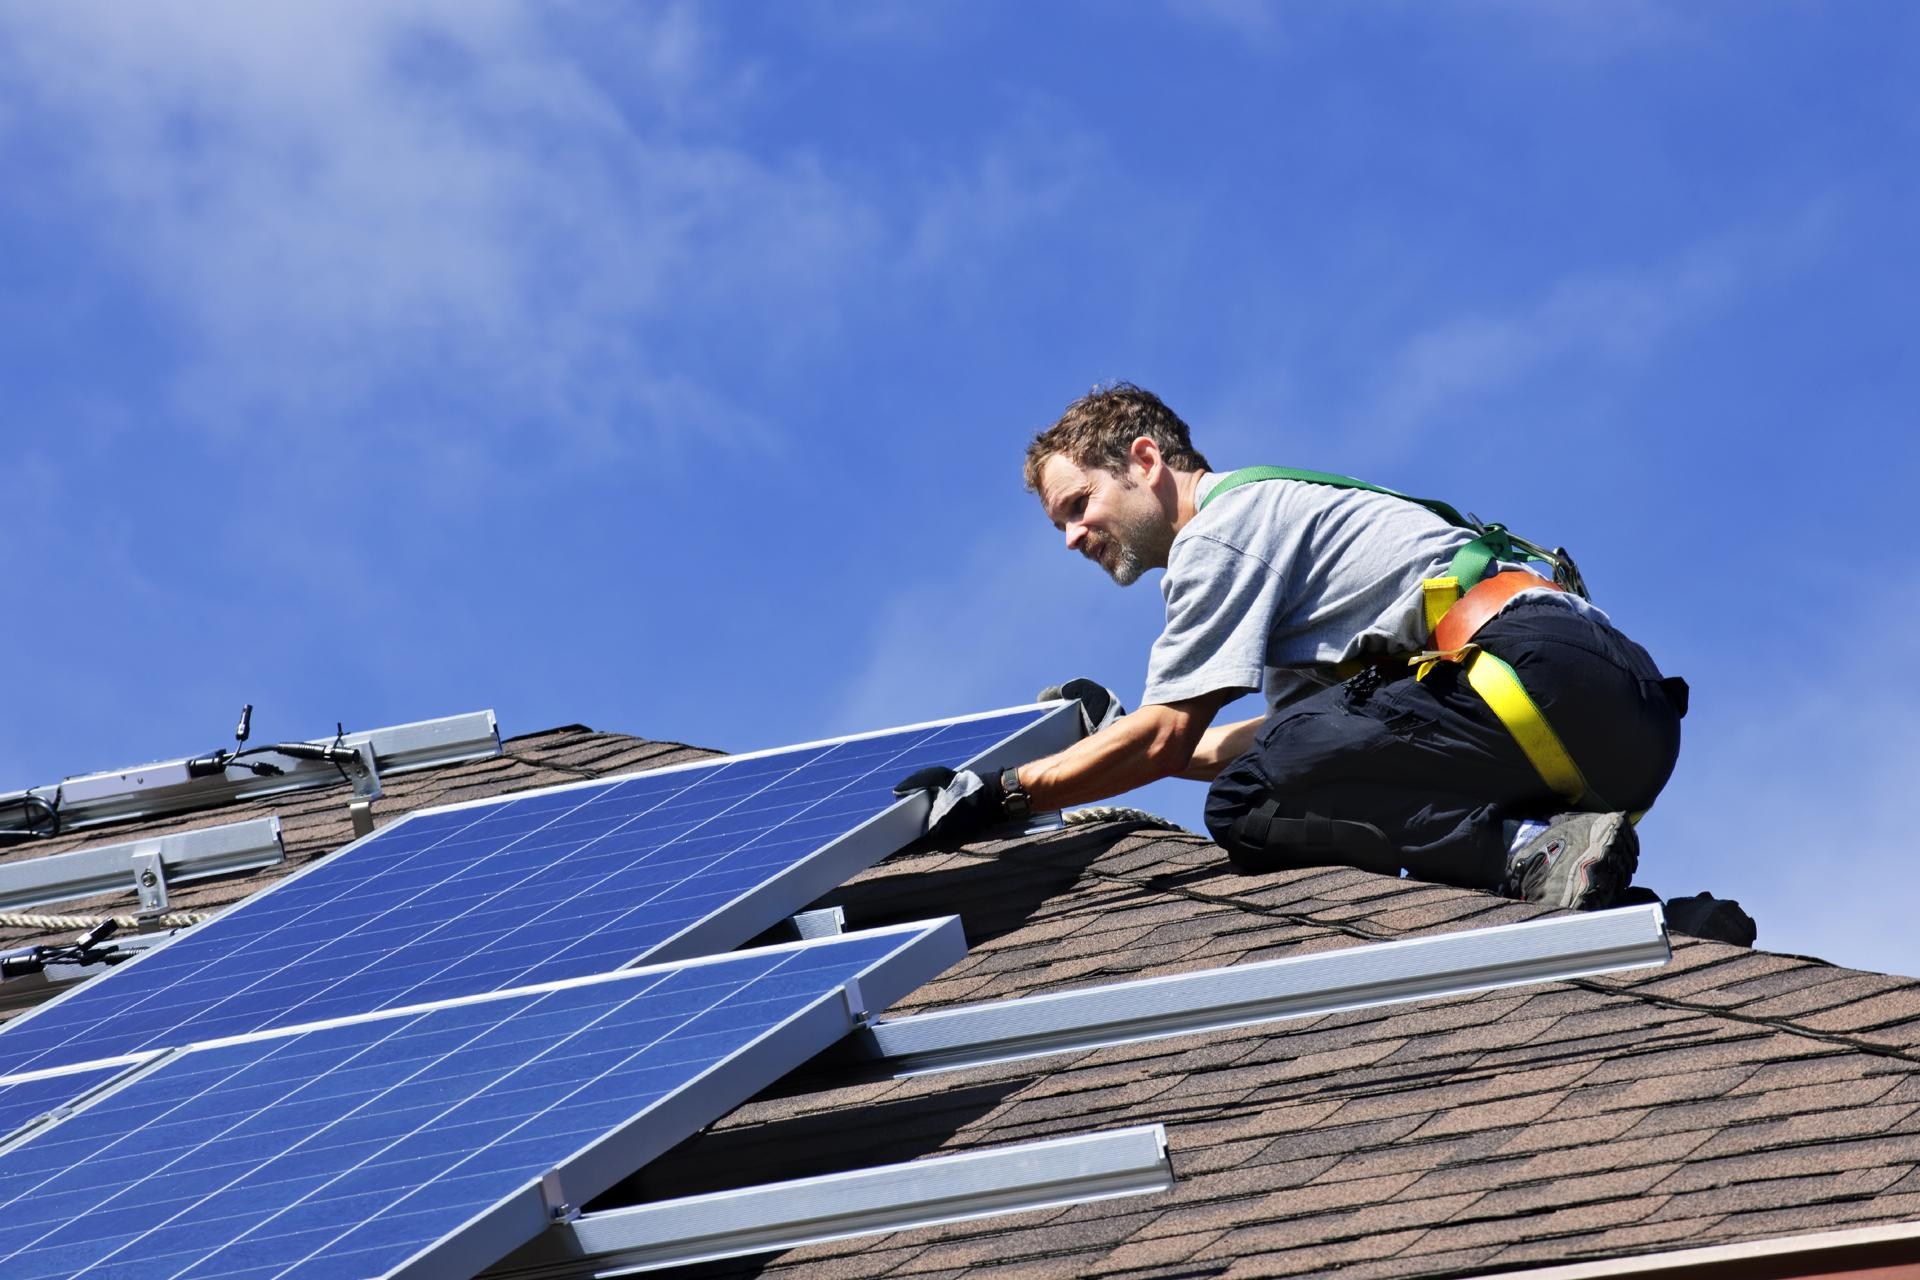 solar panel installation on roof